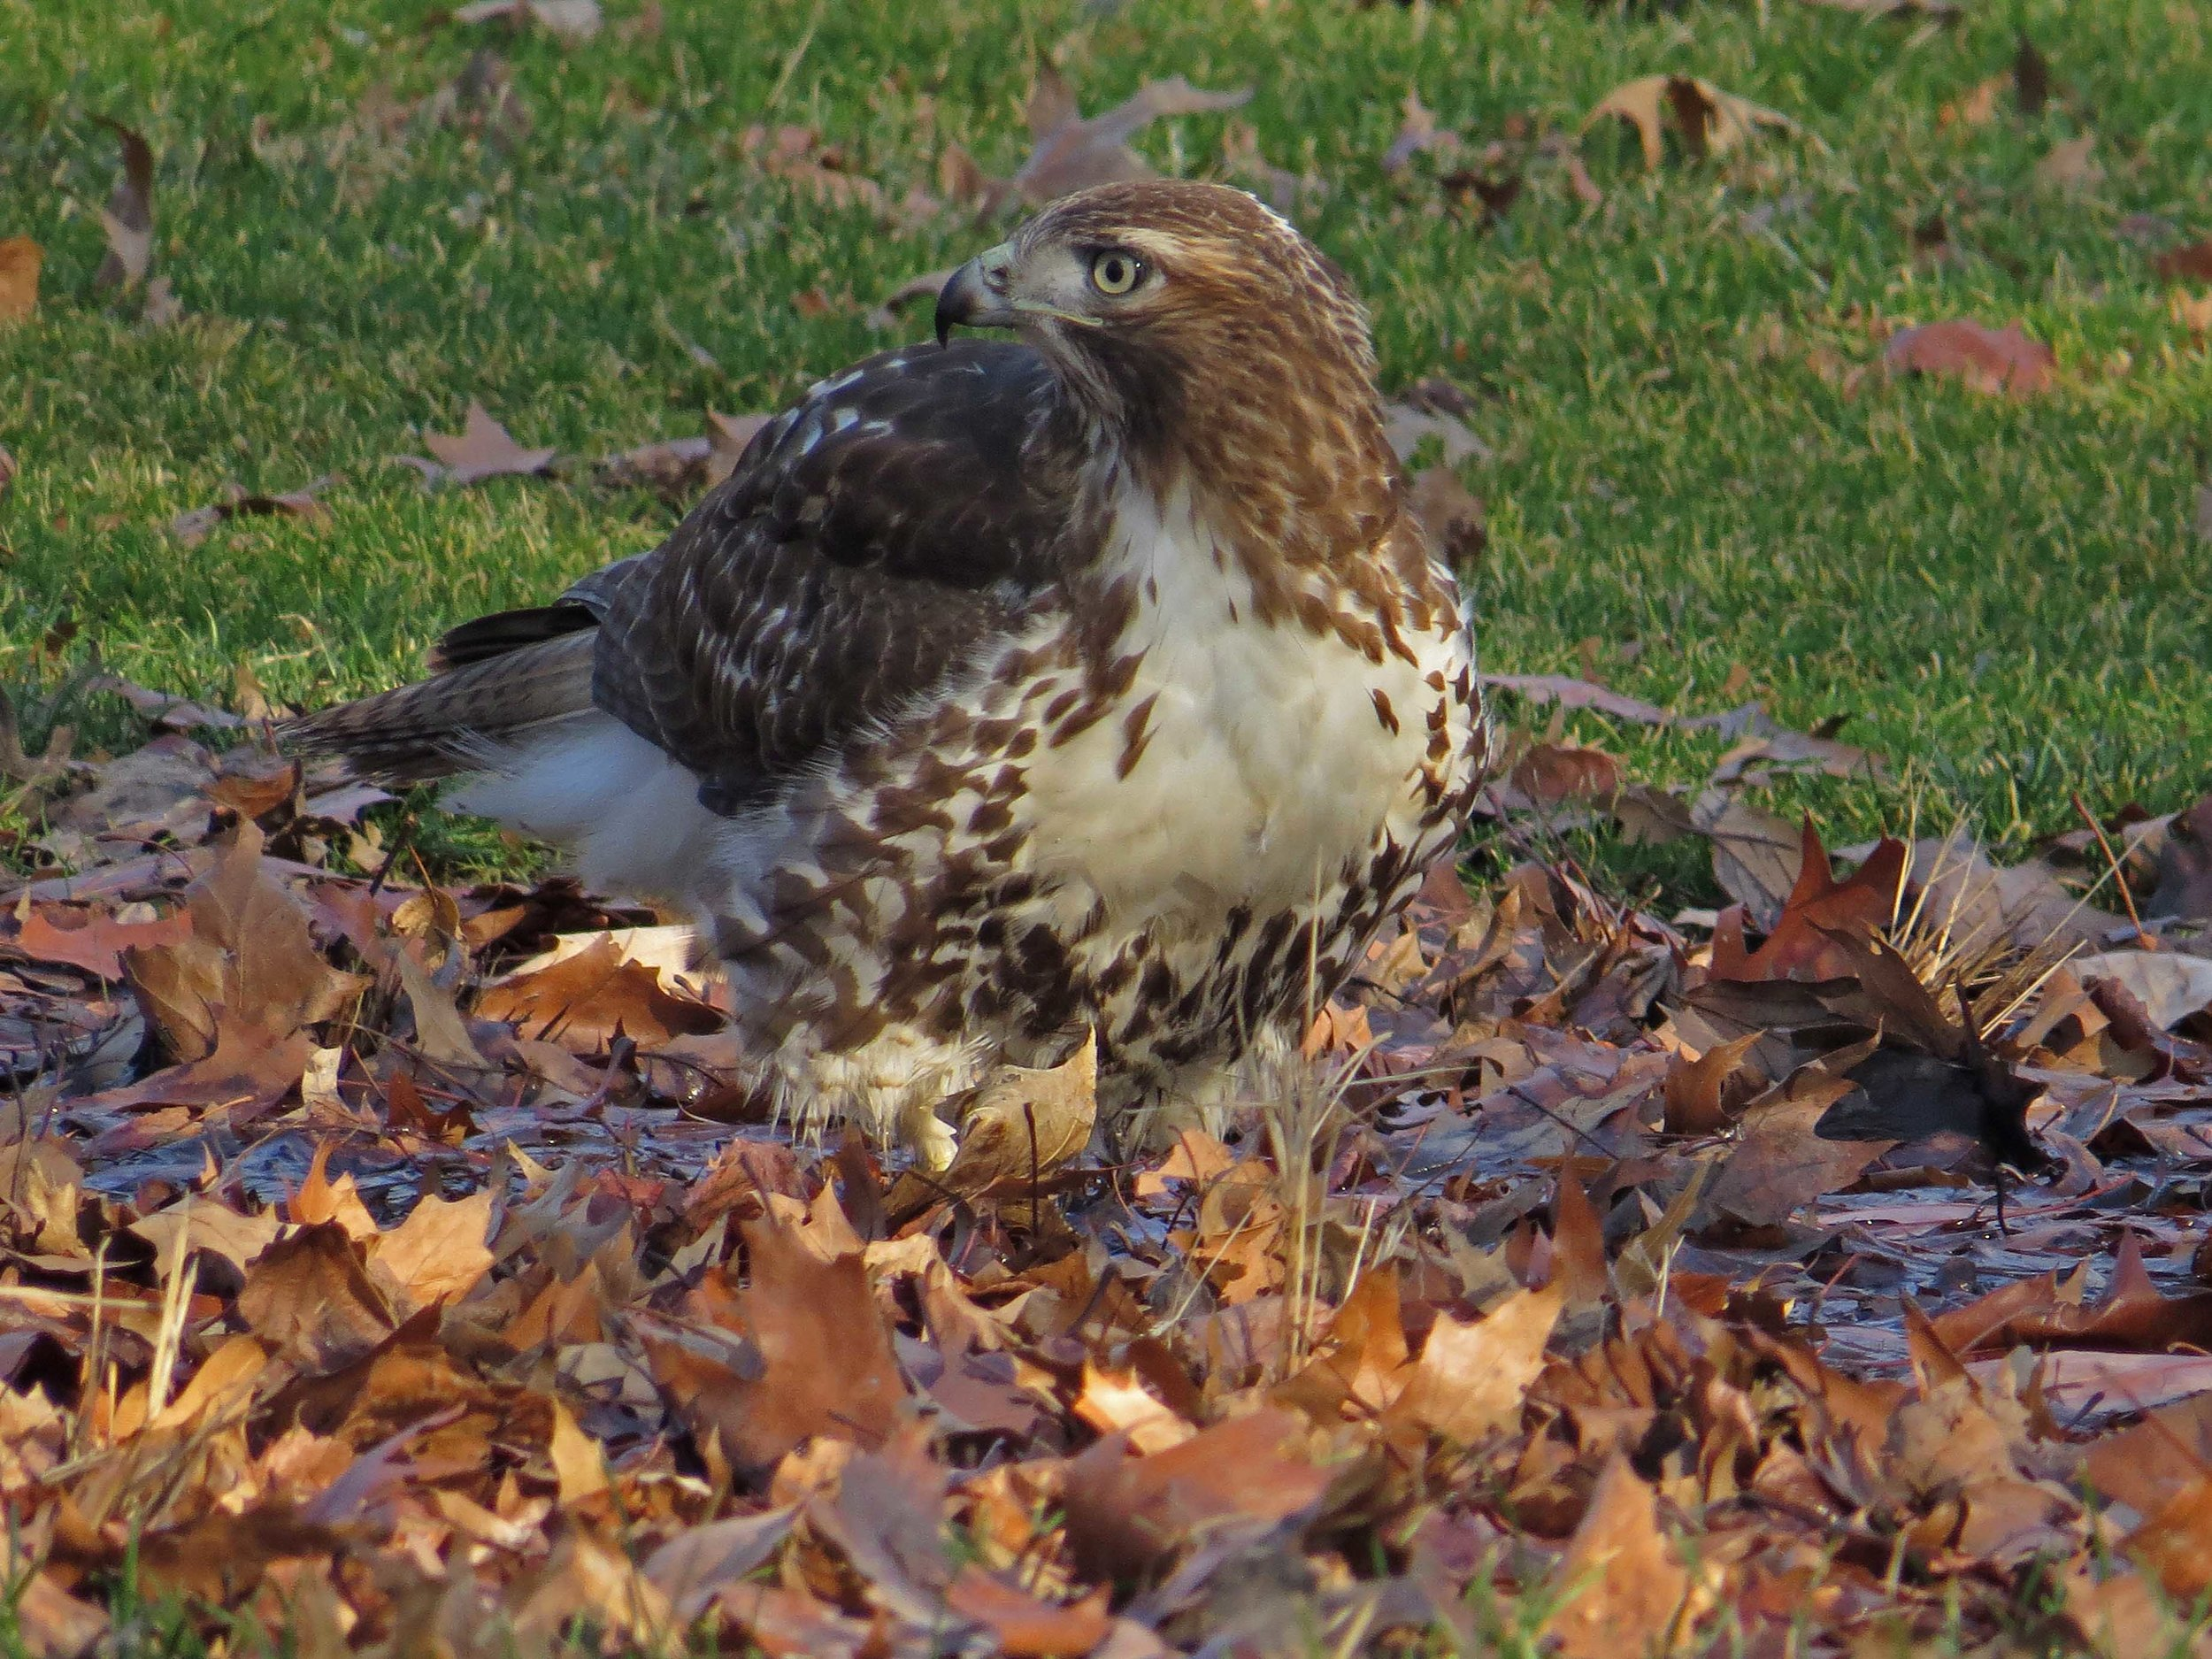 A first-year red-tailed hawk takes a bath near SummerStage, Jan. 21, 2017